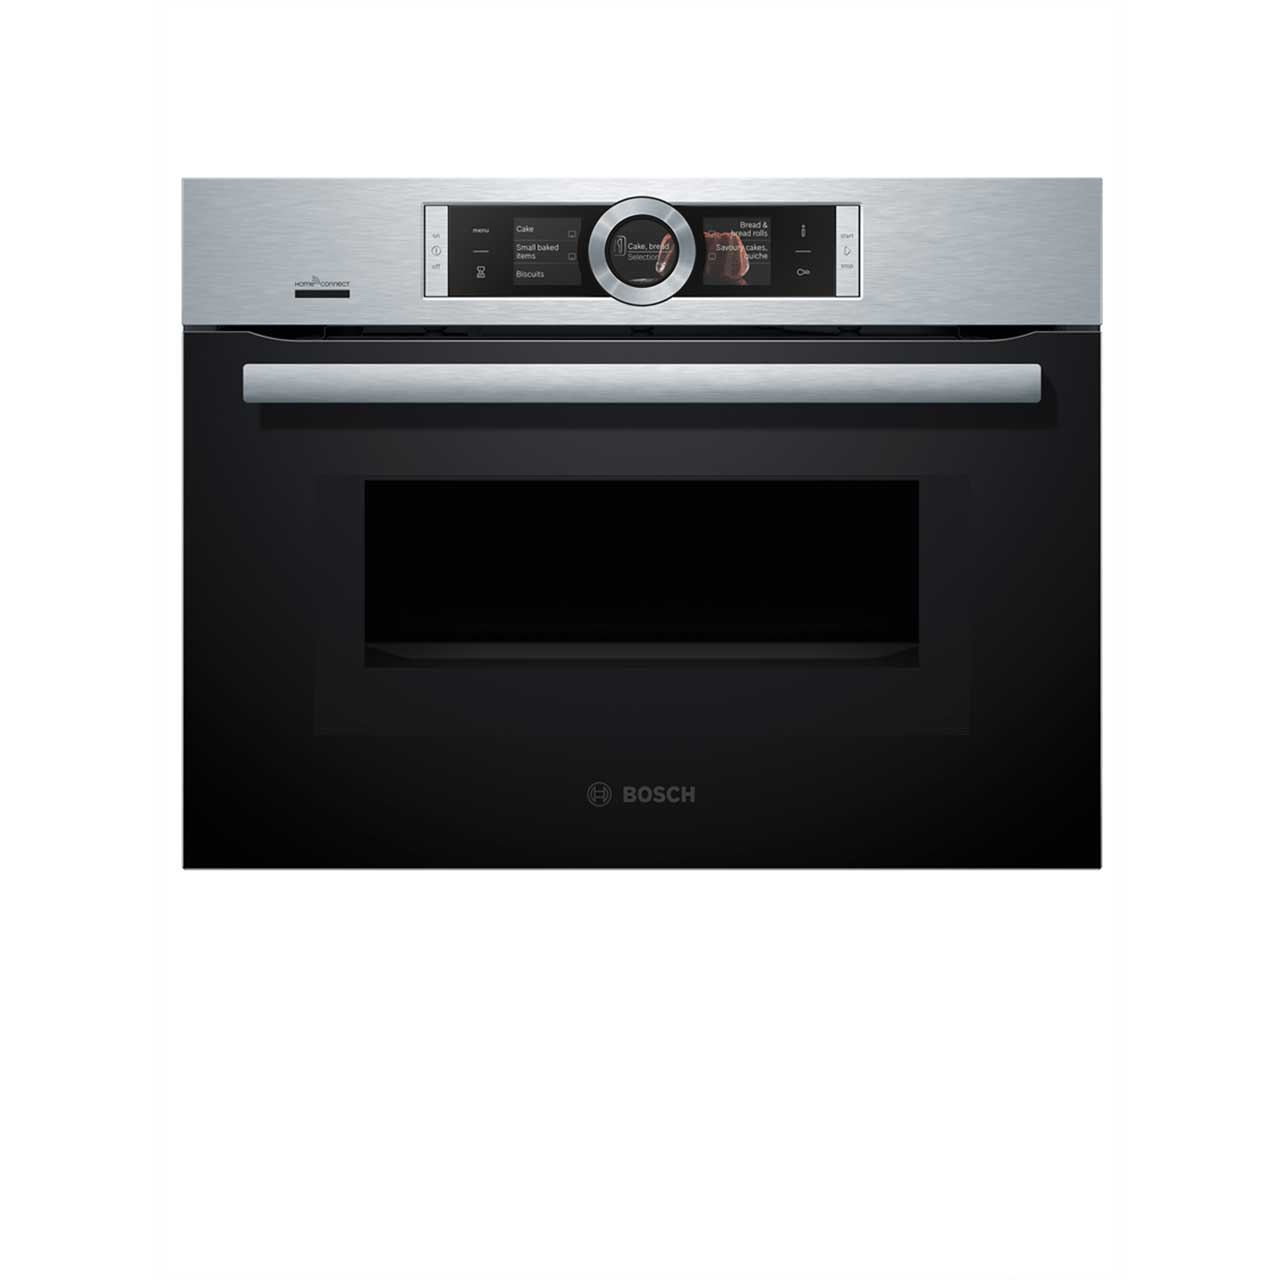 Bosch Serie 8 Cmg676bs6b Wifi Connected Built In Compact Electric Single Oven With Microwave Function